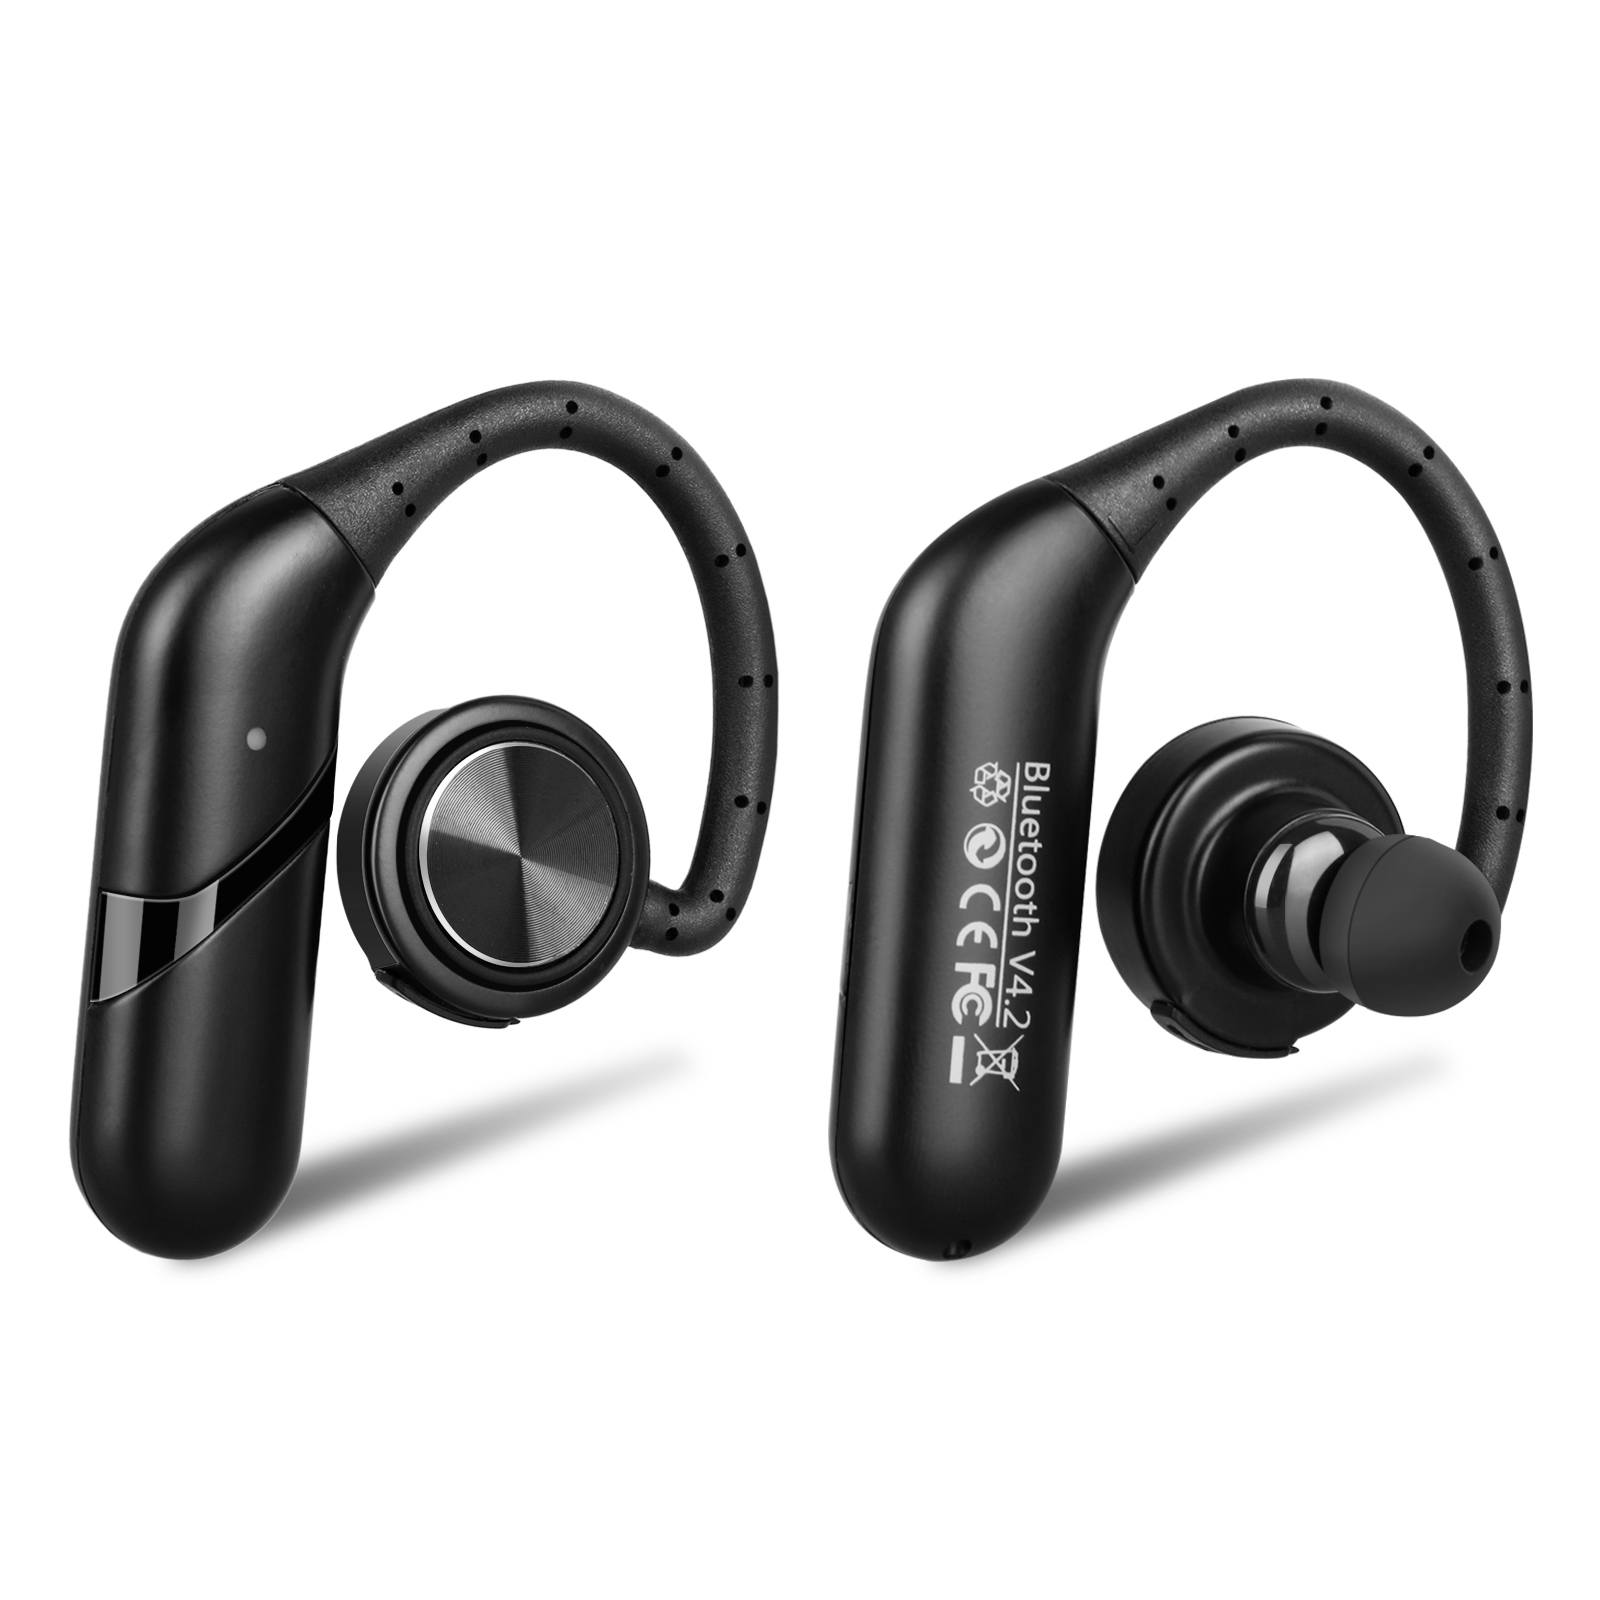 Bluetooth Wireless Headset, Waterproof Ear Hooks Earphones Noise Cancelling In-ear Earbuds True Bass Stereo w/ Mic for iPhone and Android